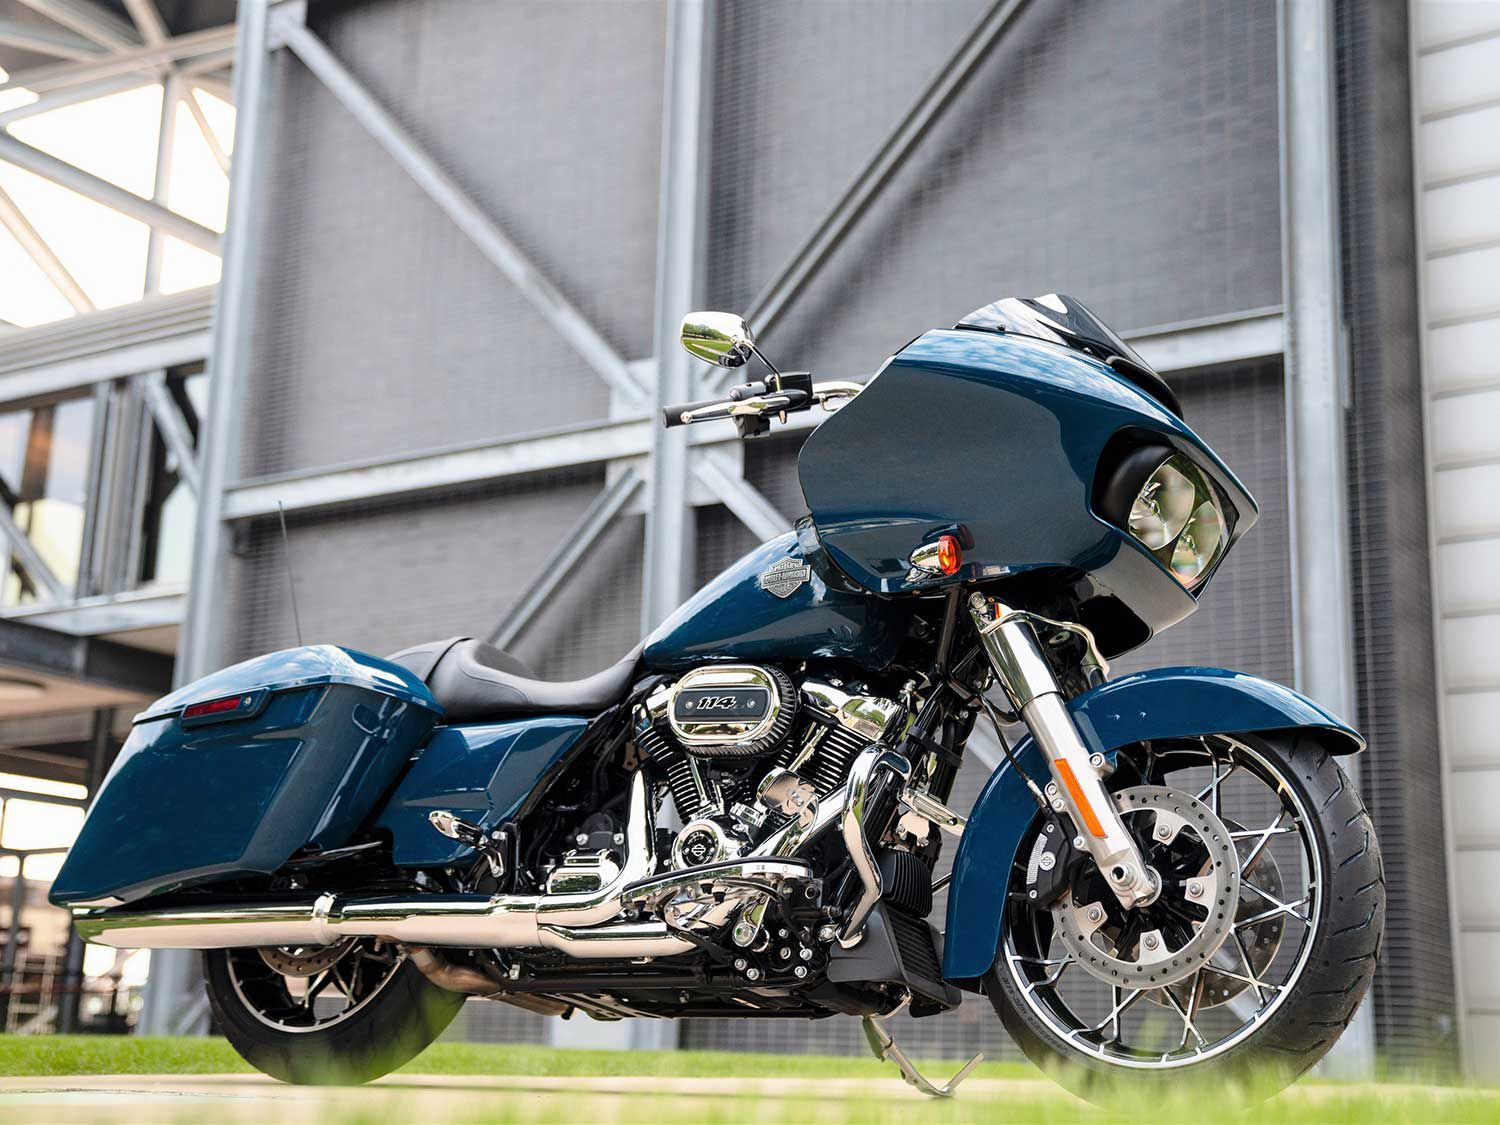 The Touring line saw no cuts to its nine-model series, but H-D did switch up clutch actuation across the line.